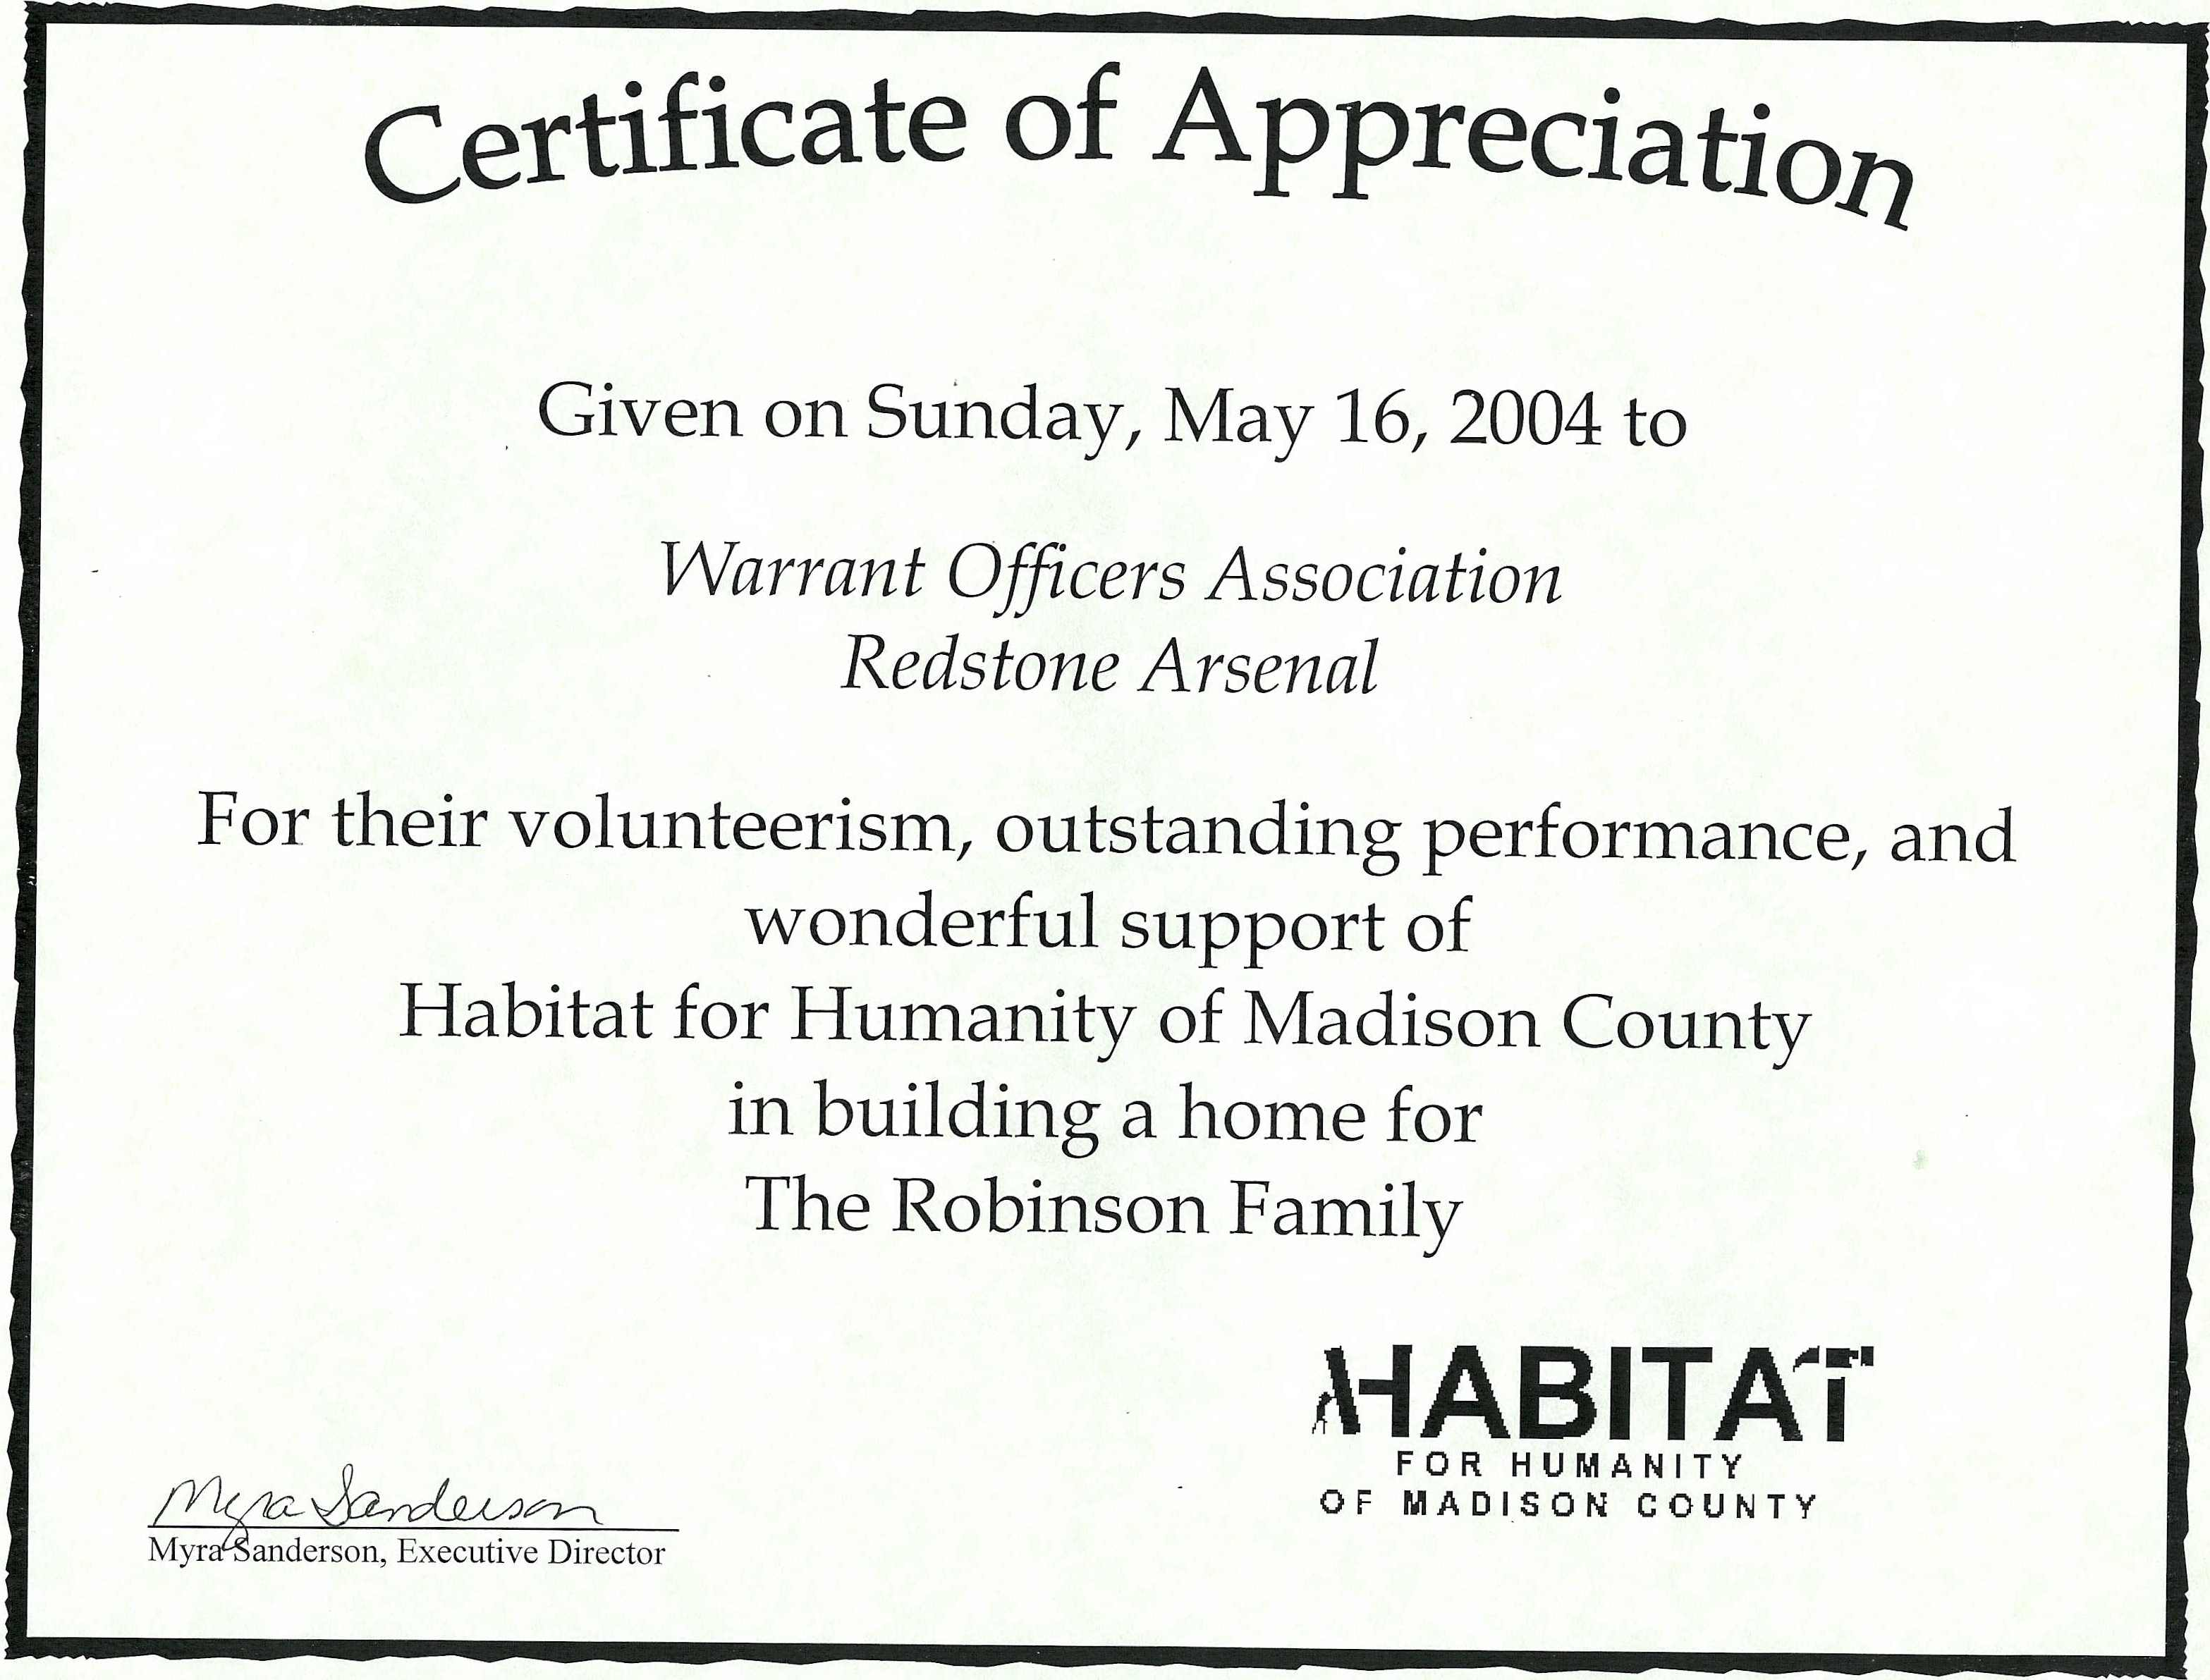 01-05162004 - Madison Habitat Certificate